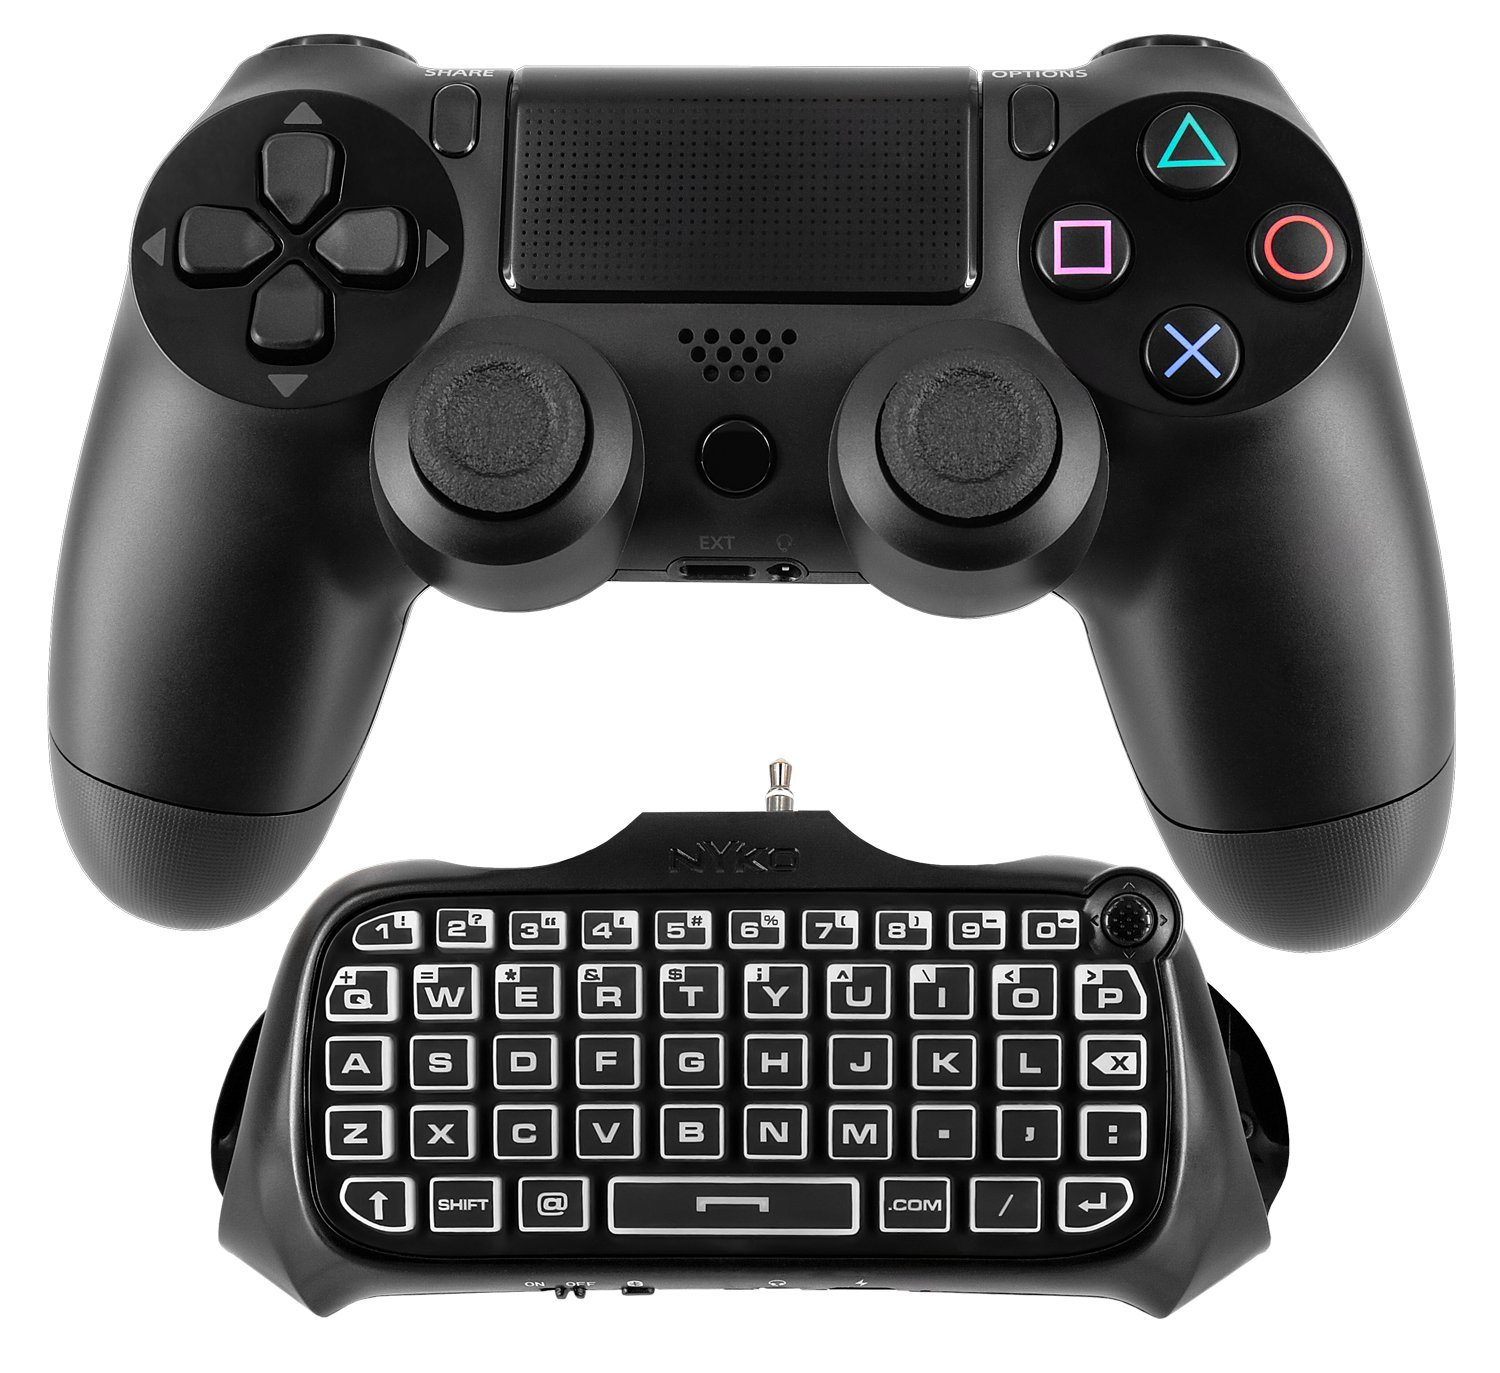 Nyko Keyboard - Wireless Connectivity - Bluetooth - Compatible With Gaming Console - Qwerty Keys Layout (83222_2)